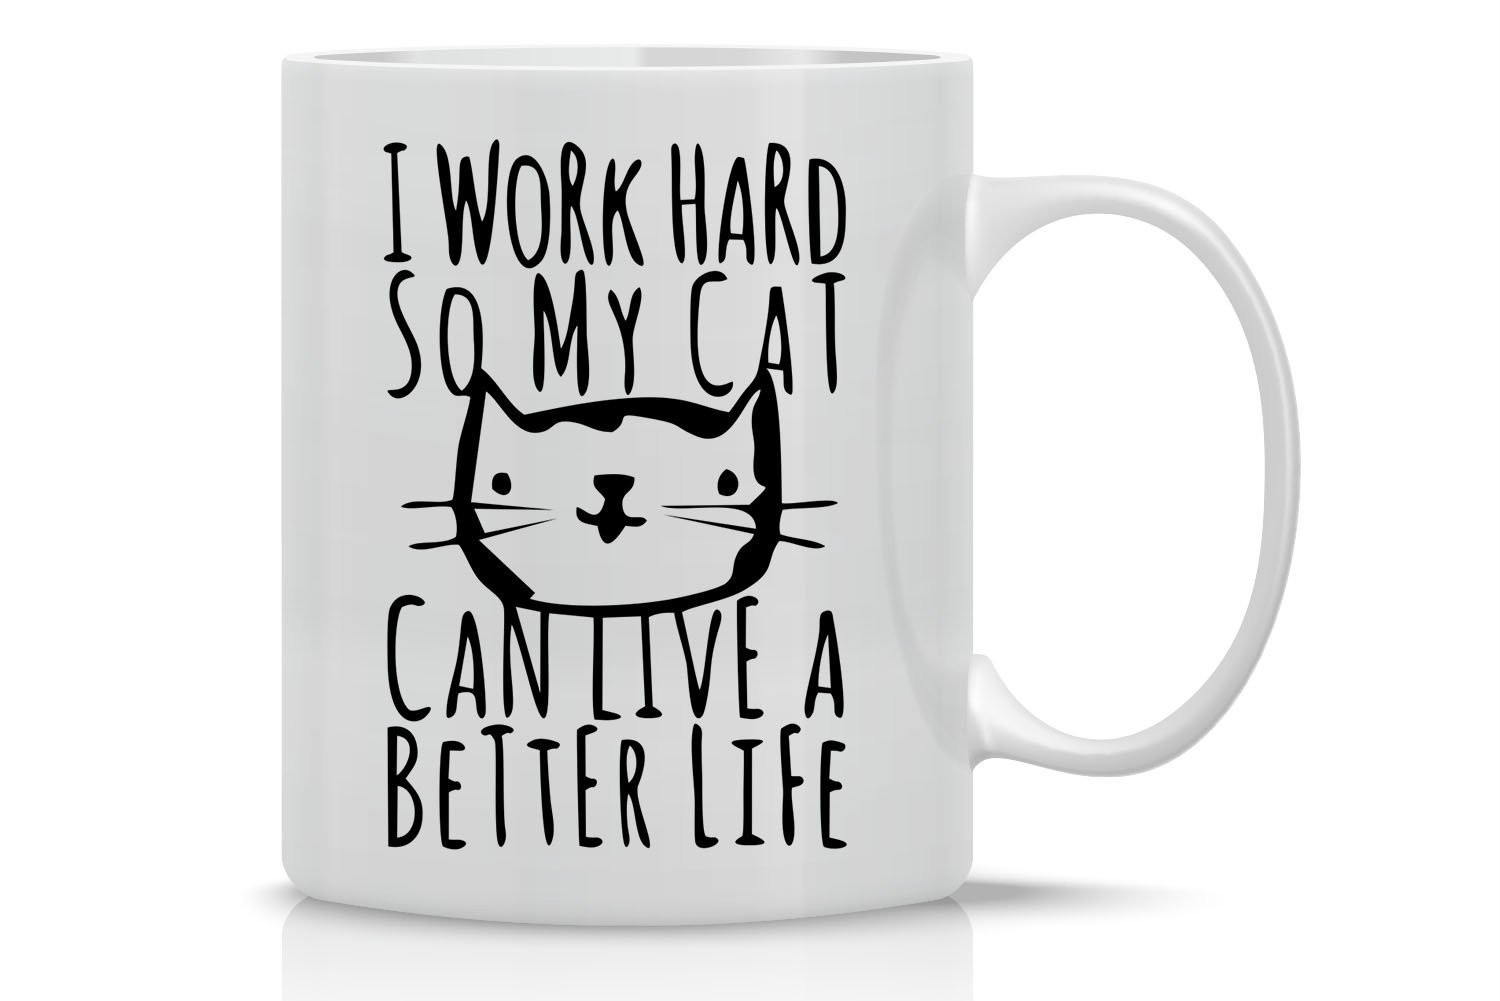 I Work Hard So My Cat Can Live A Better Life Funny Cat Mug 11OZ Coffee Mug Perfect Gift for Mother's Day image